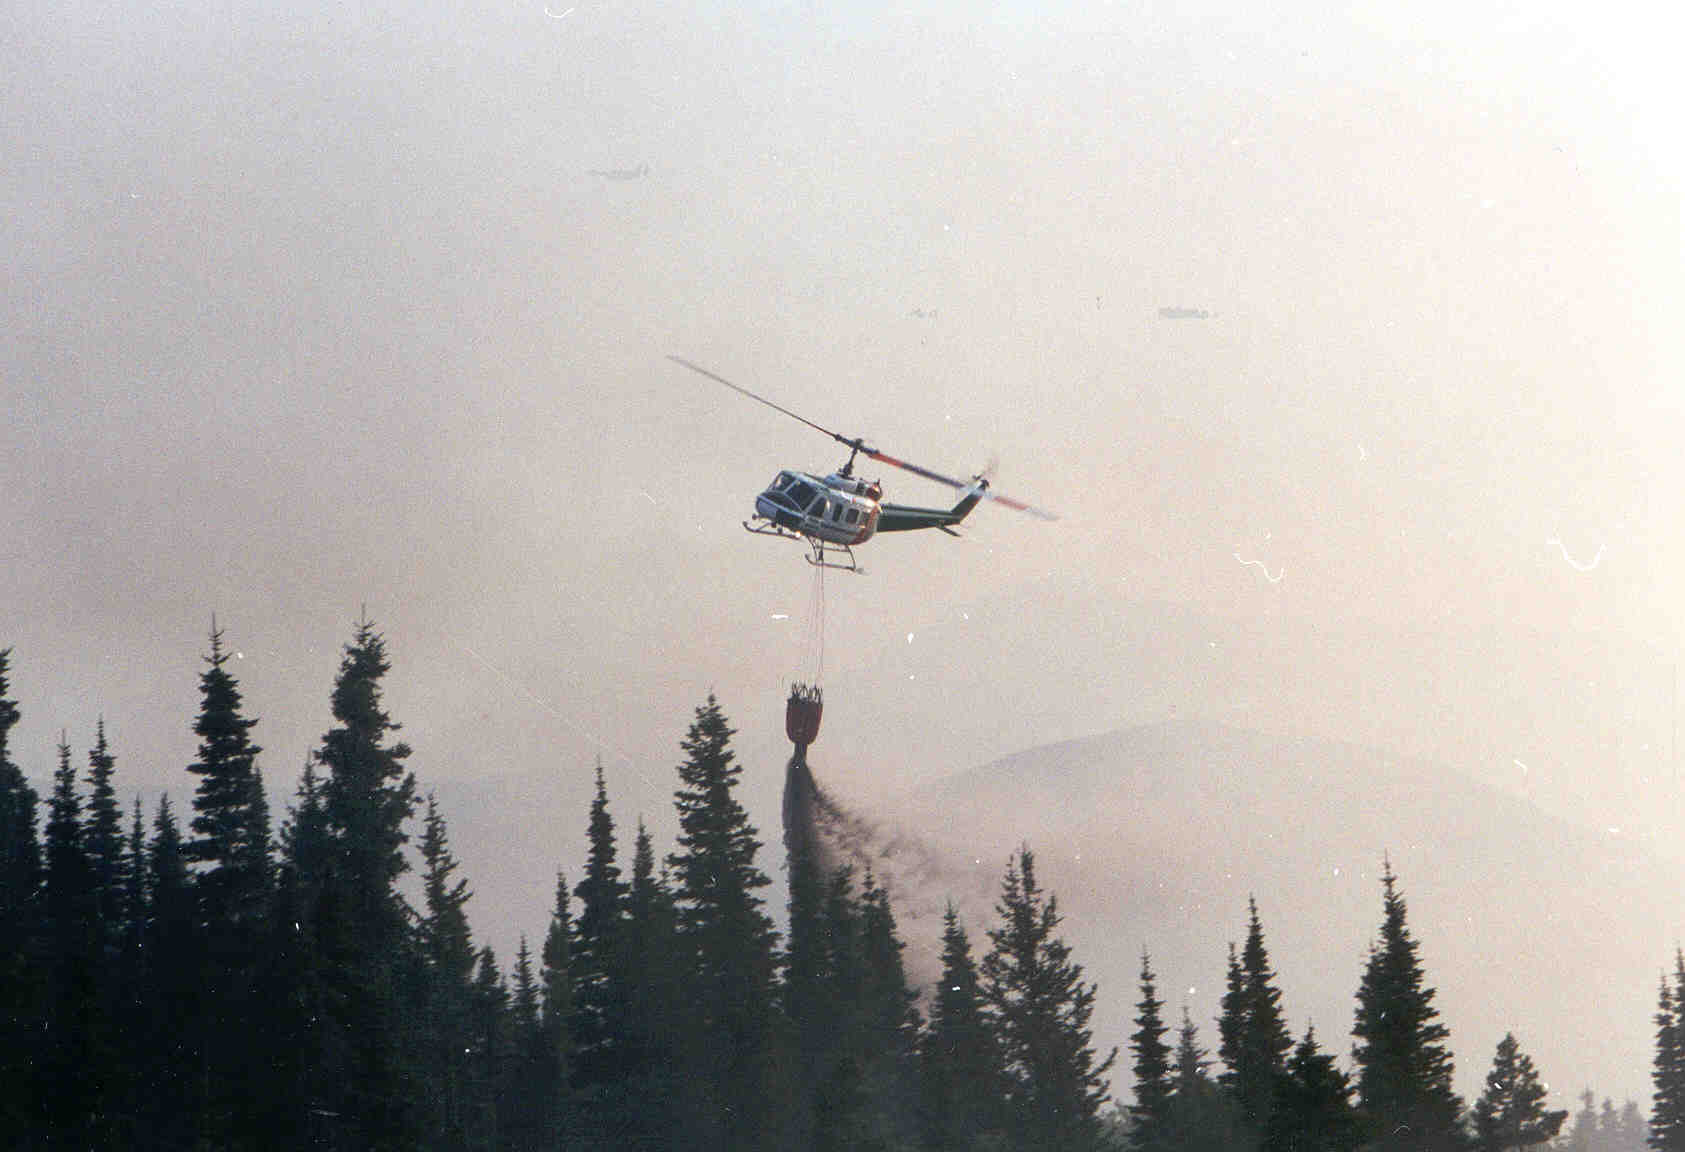 A helicopter dropping a bucket full of water on a fire